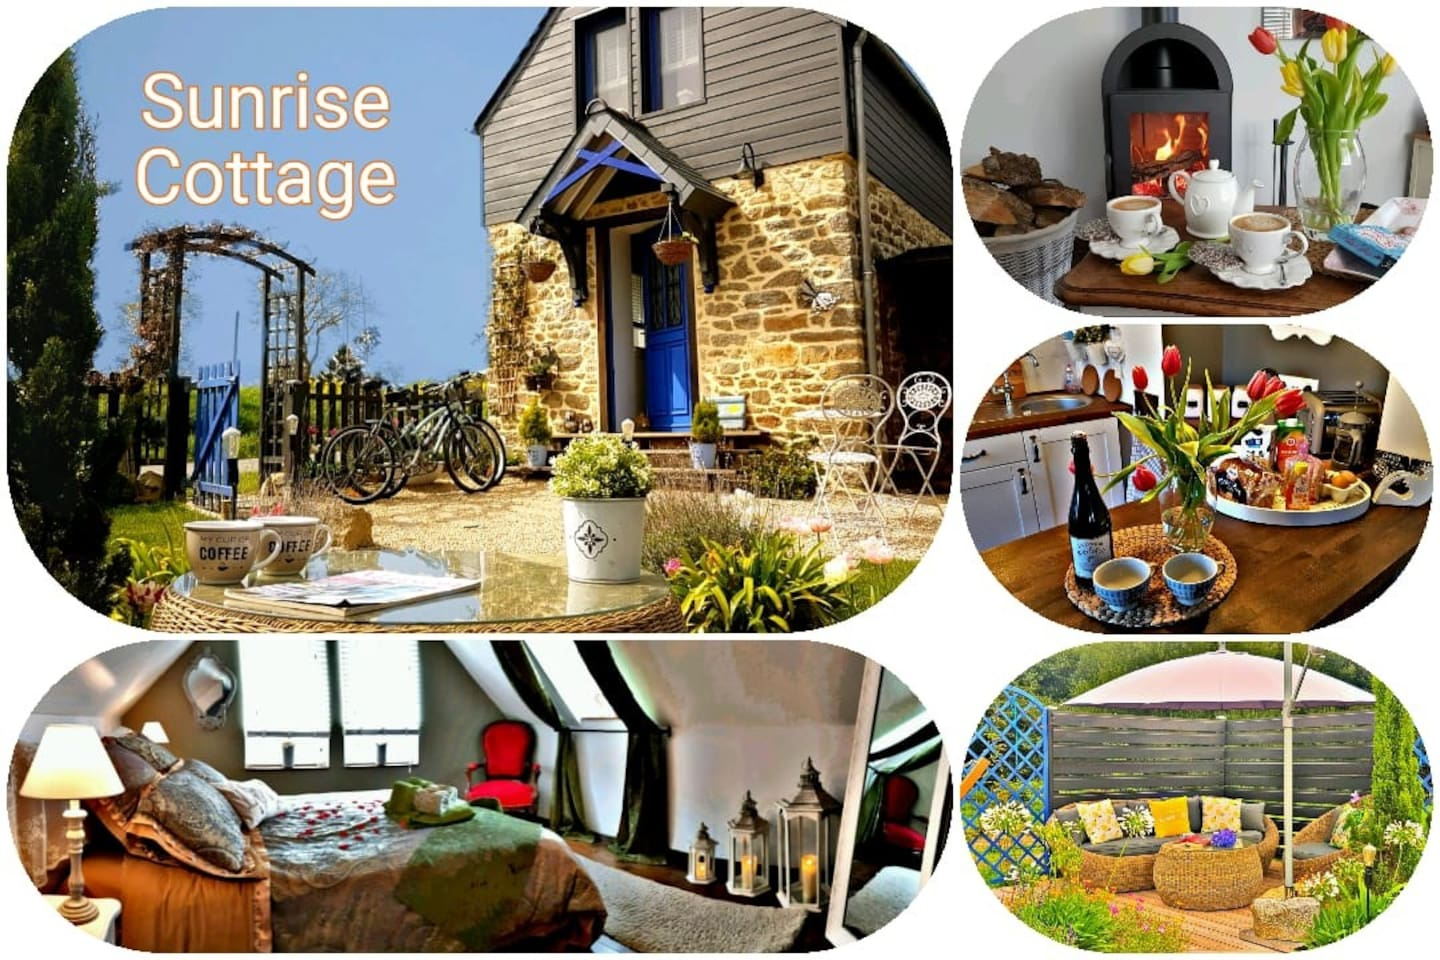 Feel at Home and enjoy , bienvenue in Sunrise Cottage